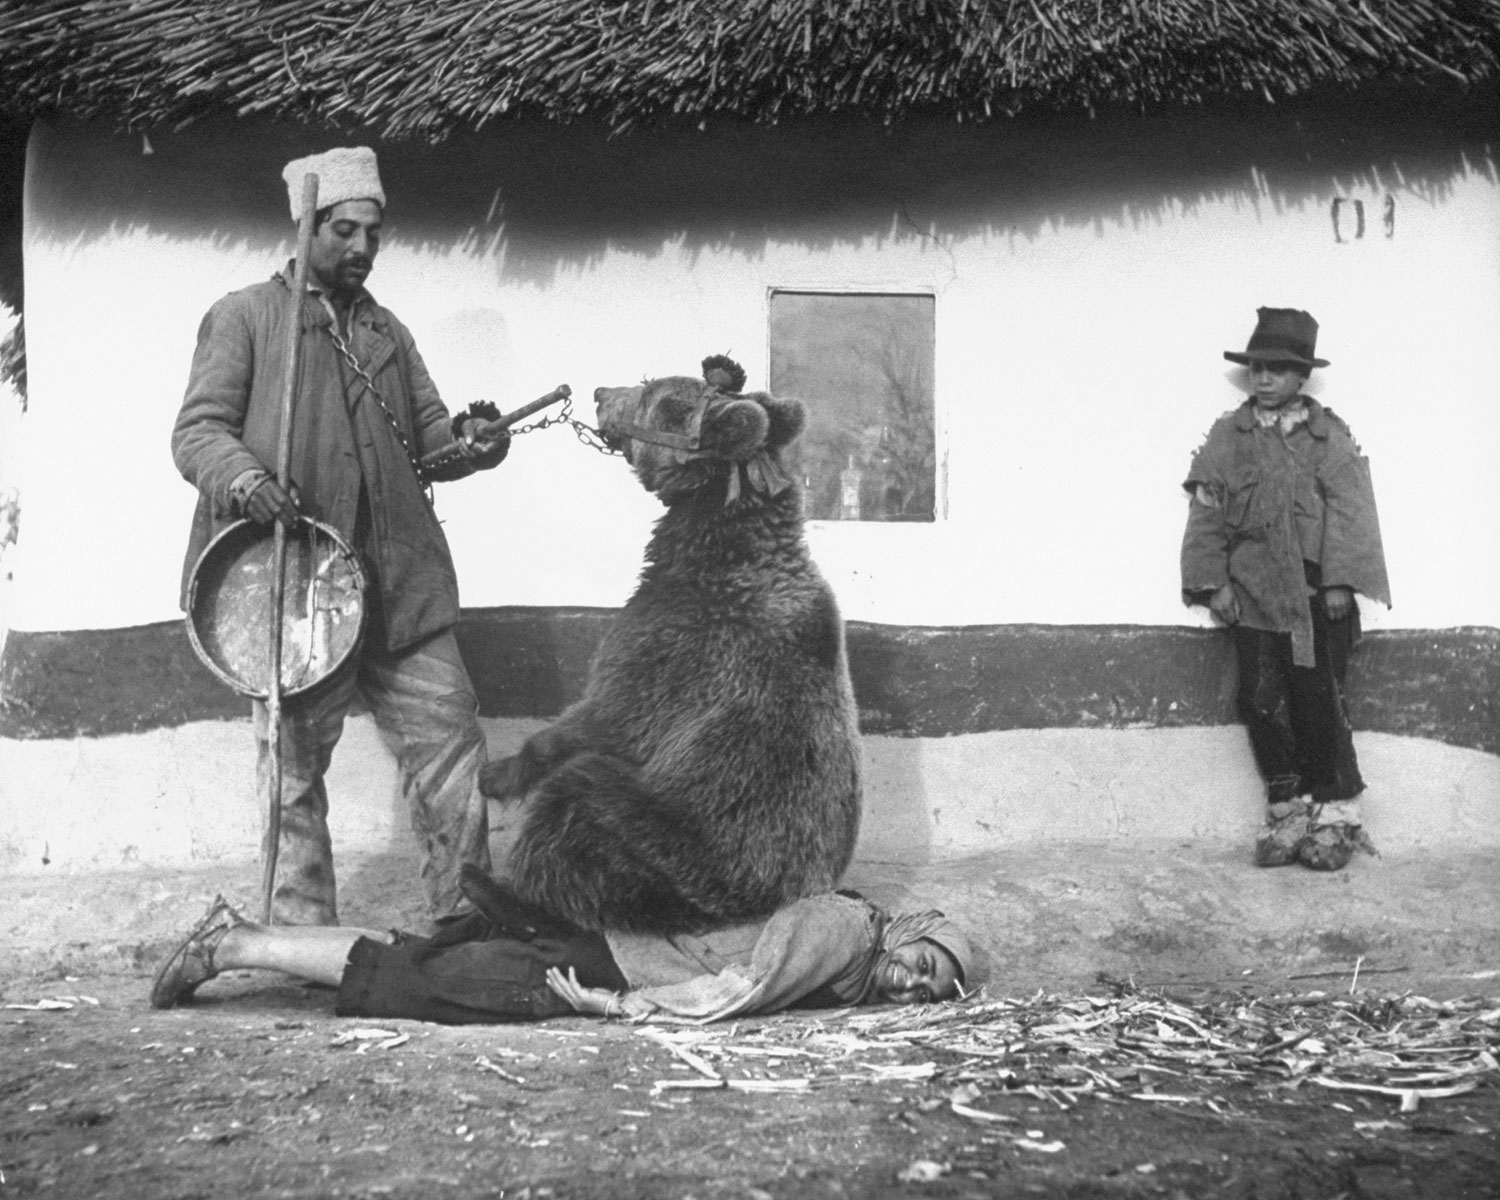 treatment-of-back-massage-by-a-bear-romania-1940